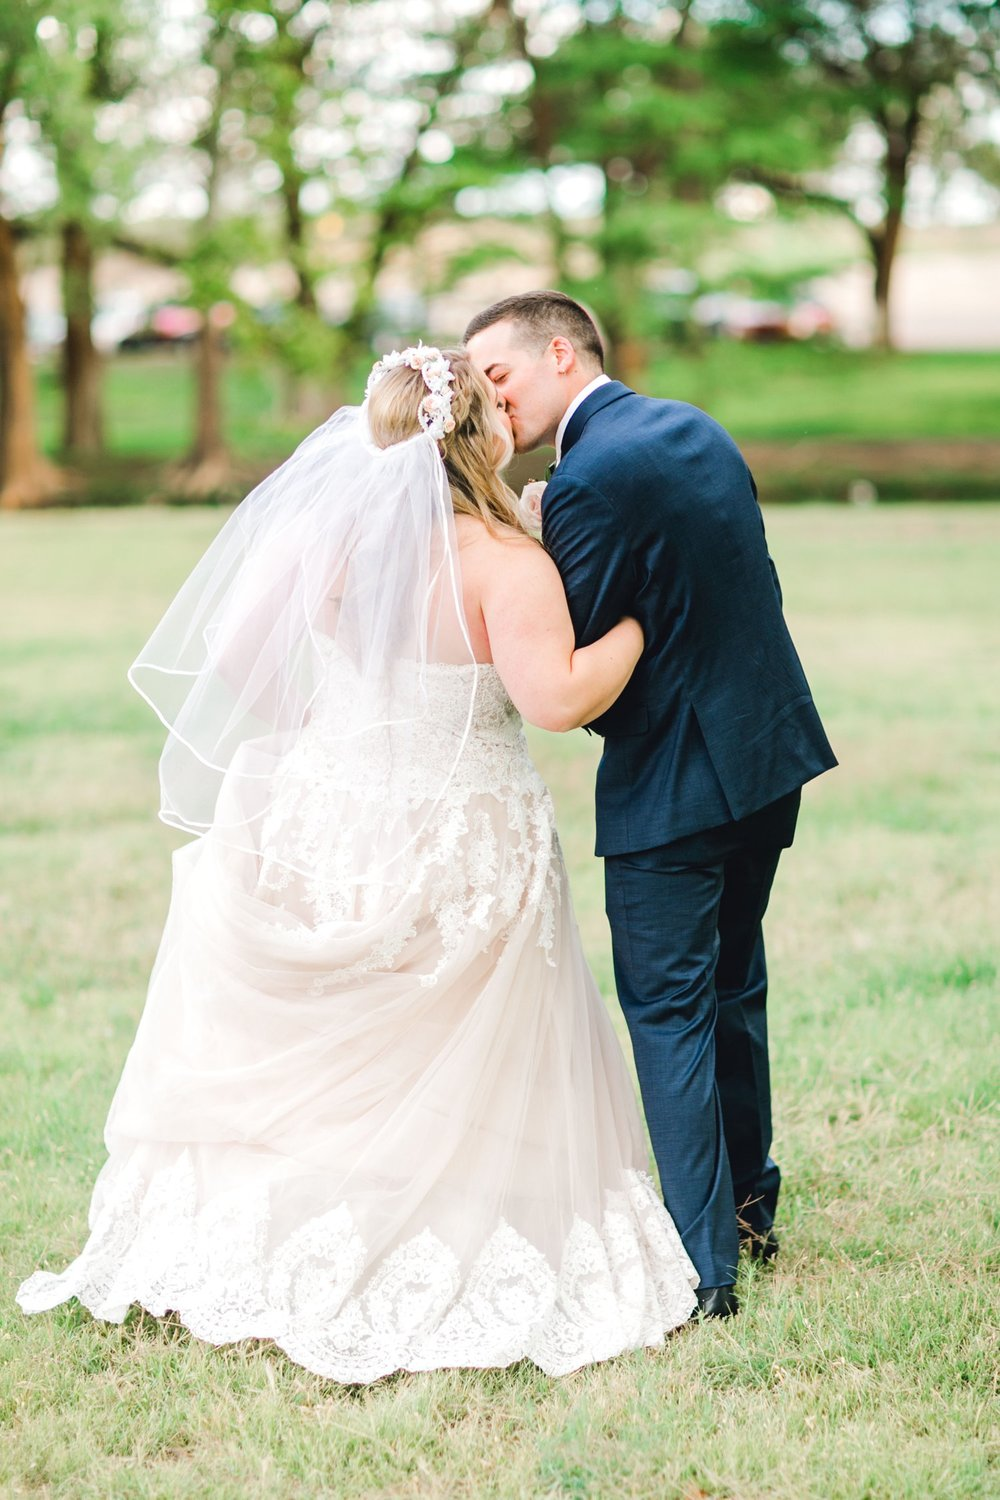 SARAH_AND_GEOFFREY_SHARP_SPIRIT_RANCH_WEDDING_ALLEEJ_LUBBOCK_TX_0107.jpg